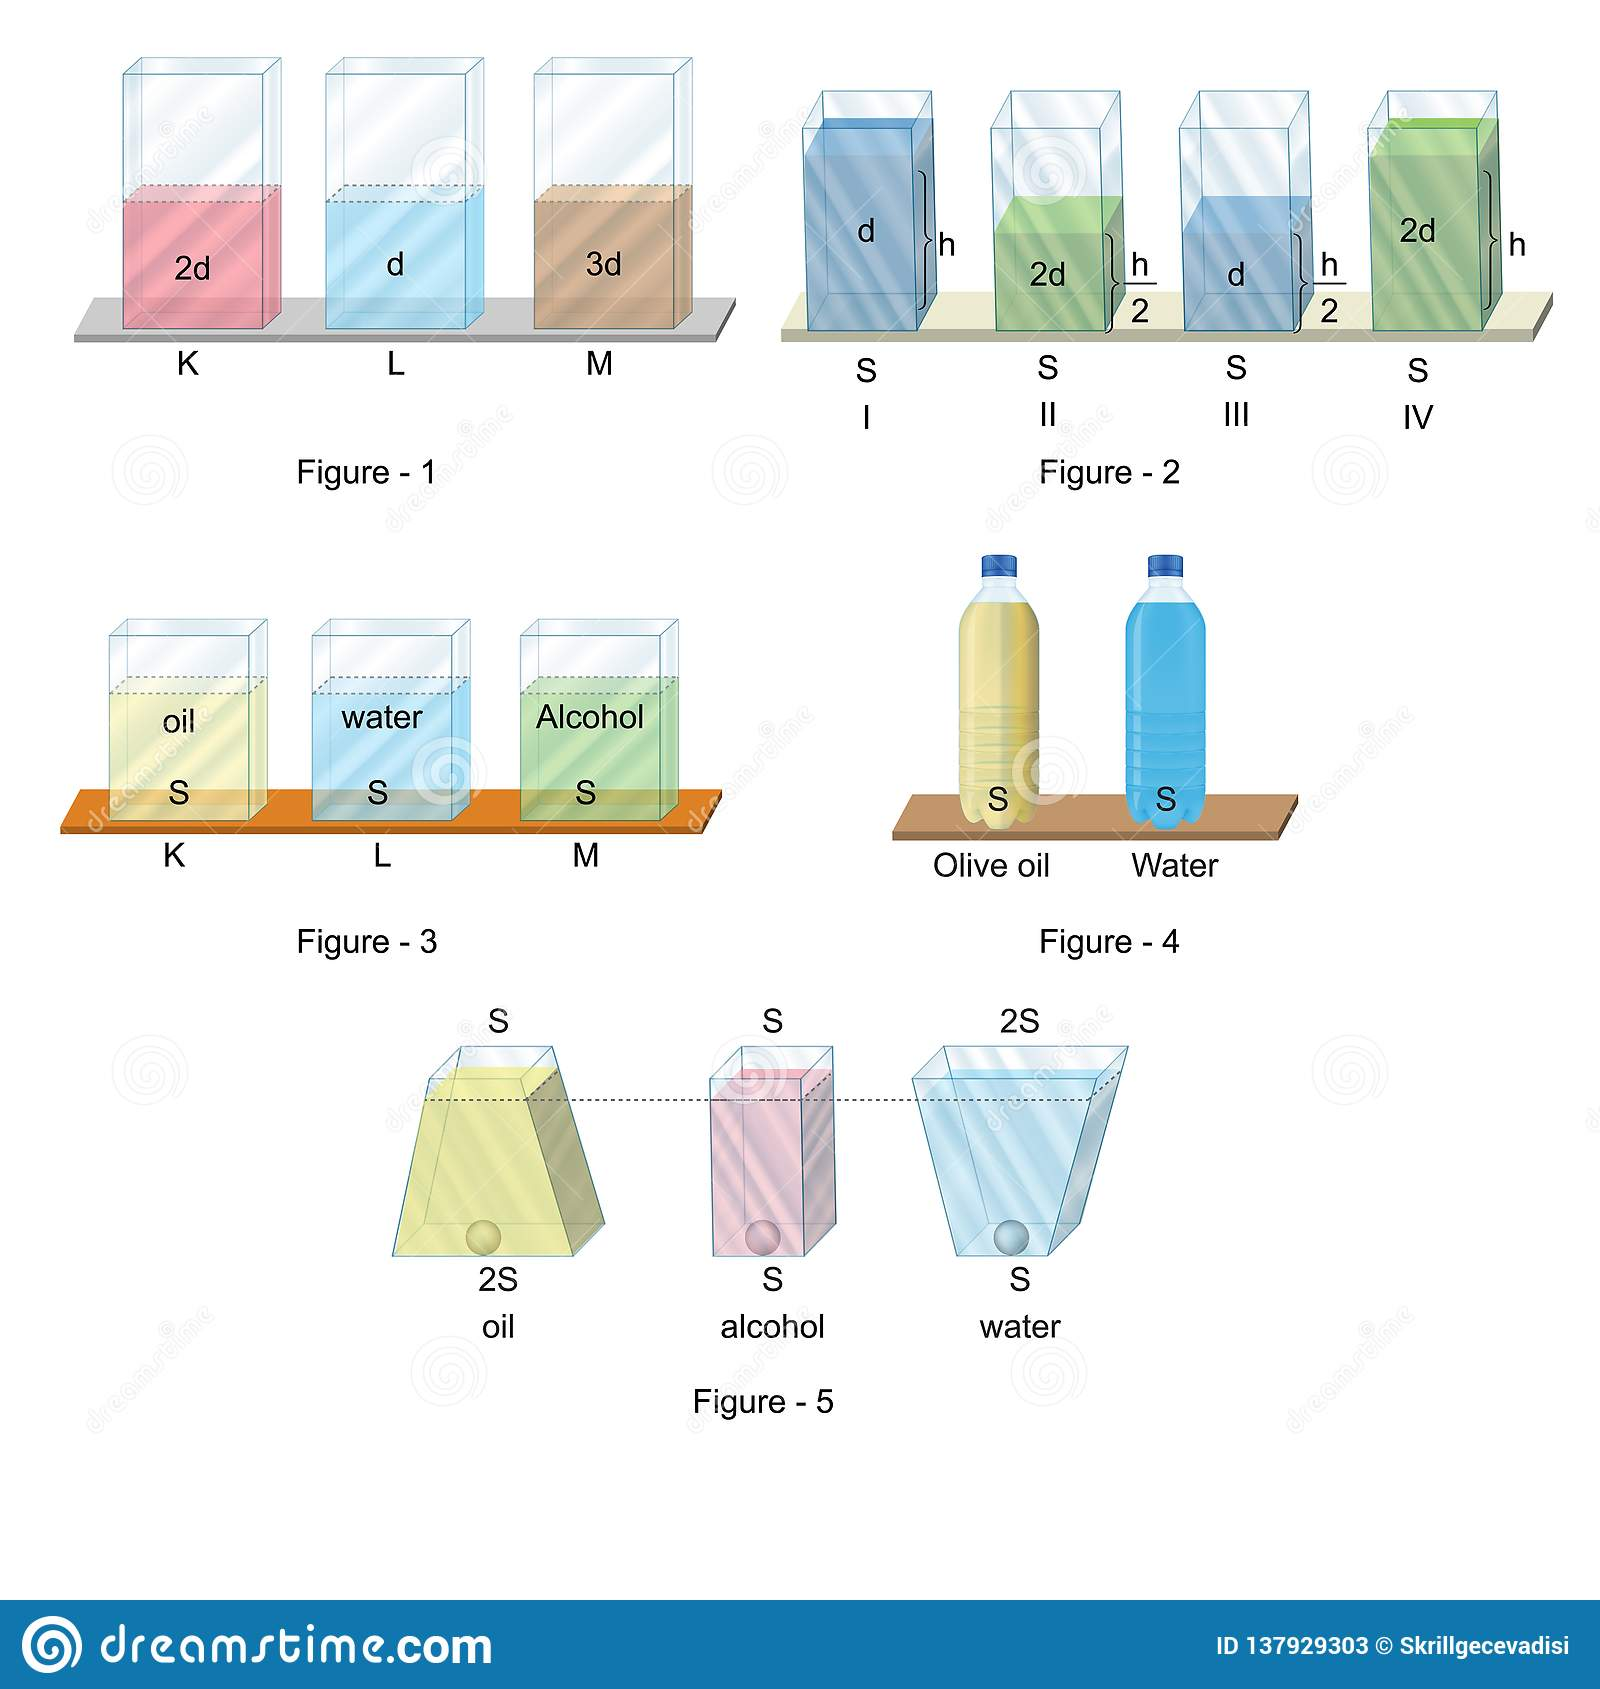 hight resolution of area box chemistry concentration container density desalination design diagram education energy equipment experiment flat fluid force glass